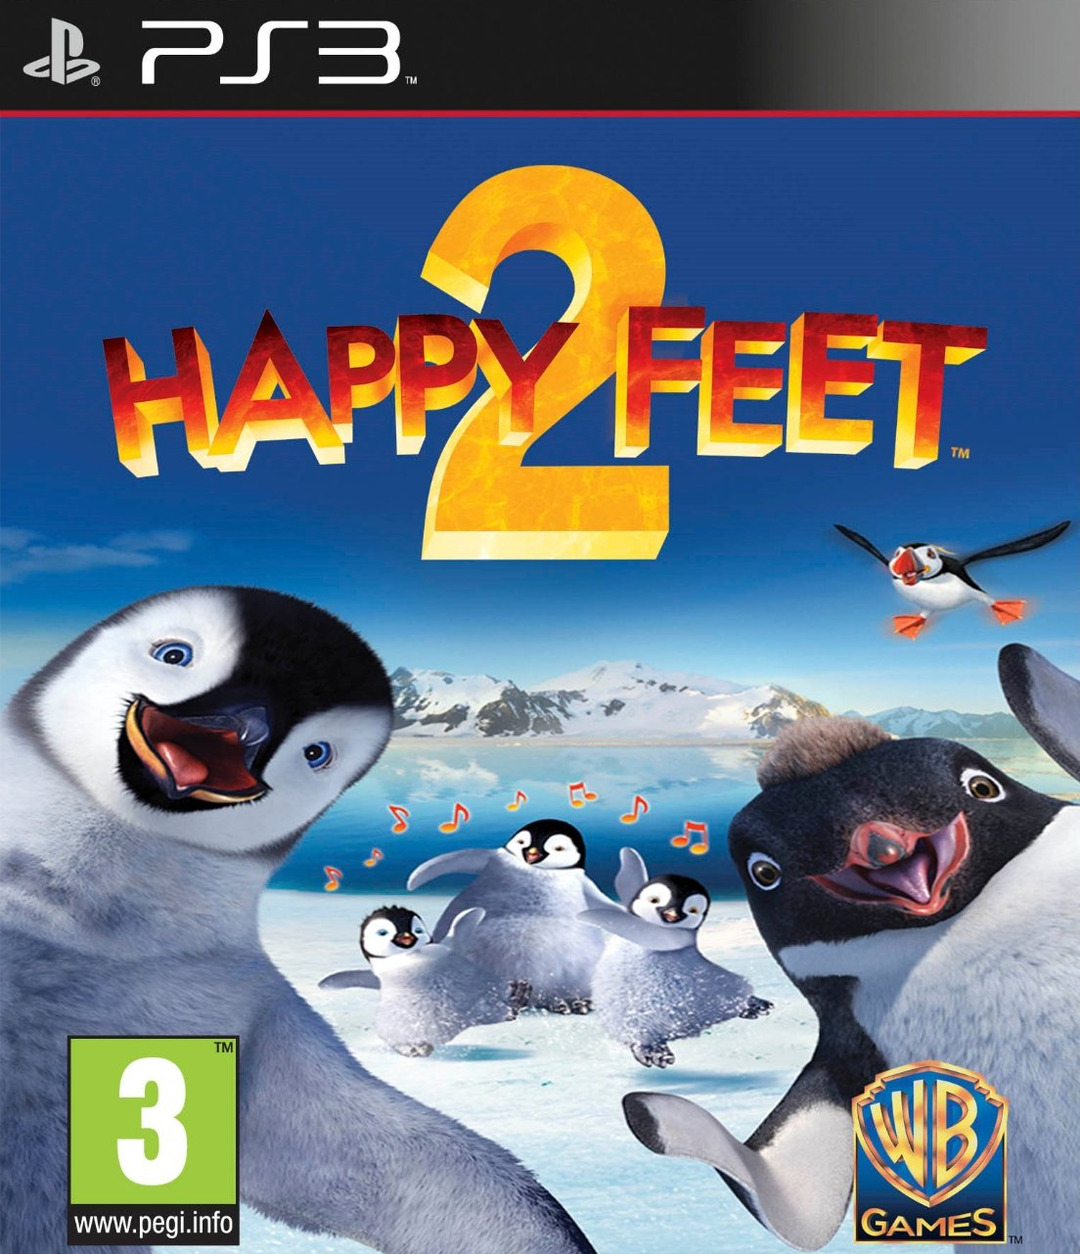 jaquette-happy-feet-2-playstation-3-ps3-cover-avant-g-1317720296.jpg